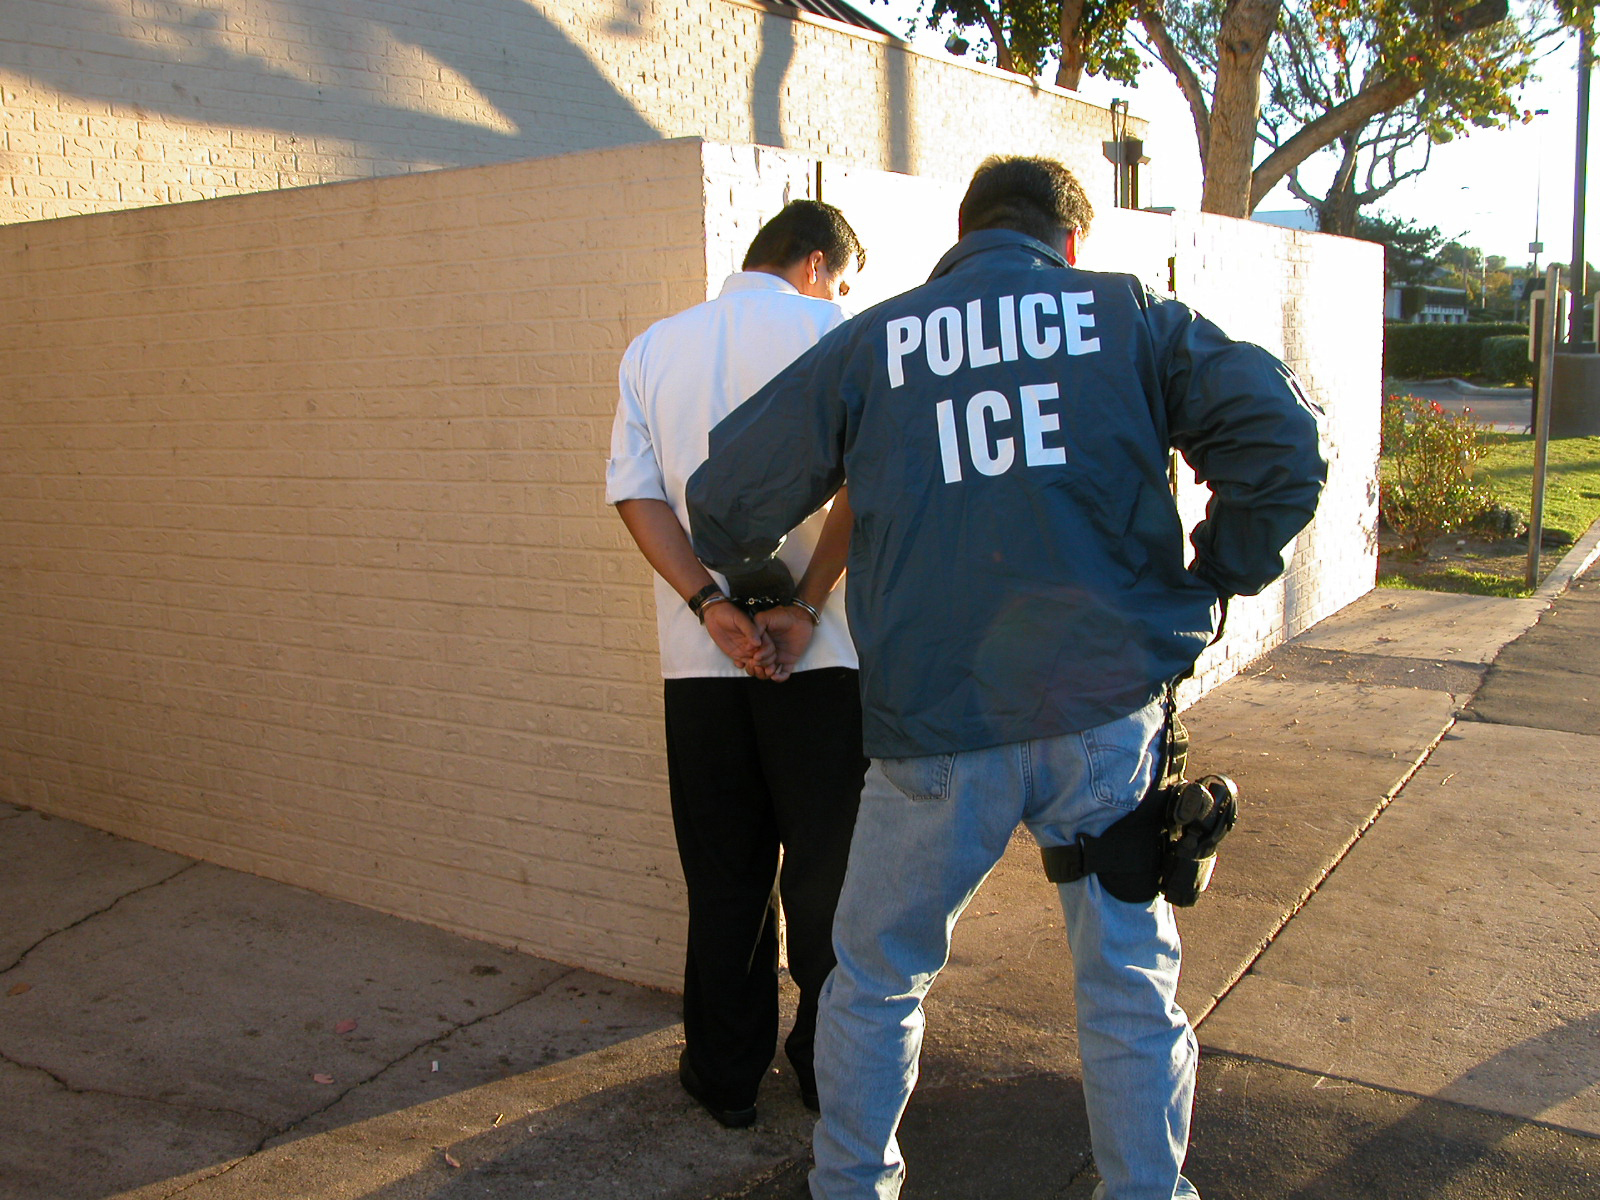 ICE is Paying Millions to Surveillance Company to Spy on People's Communications